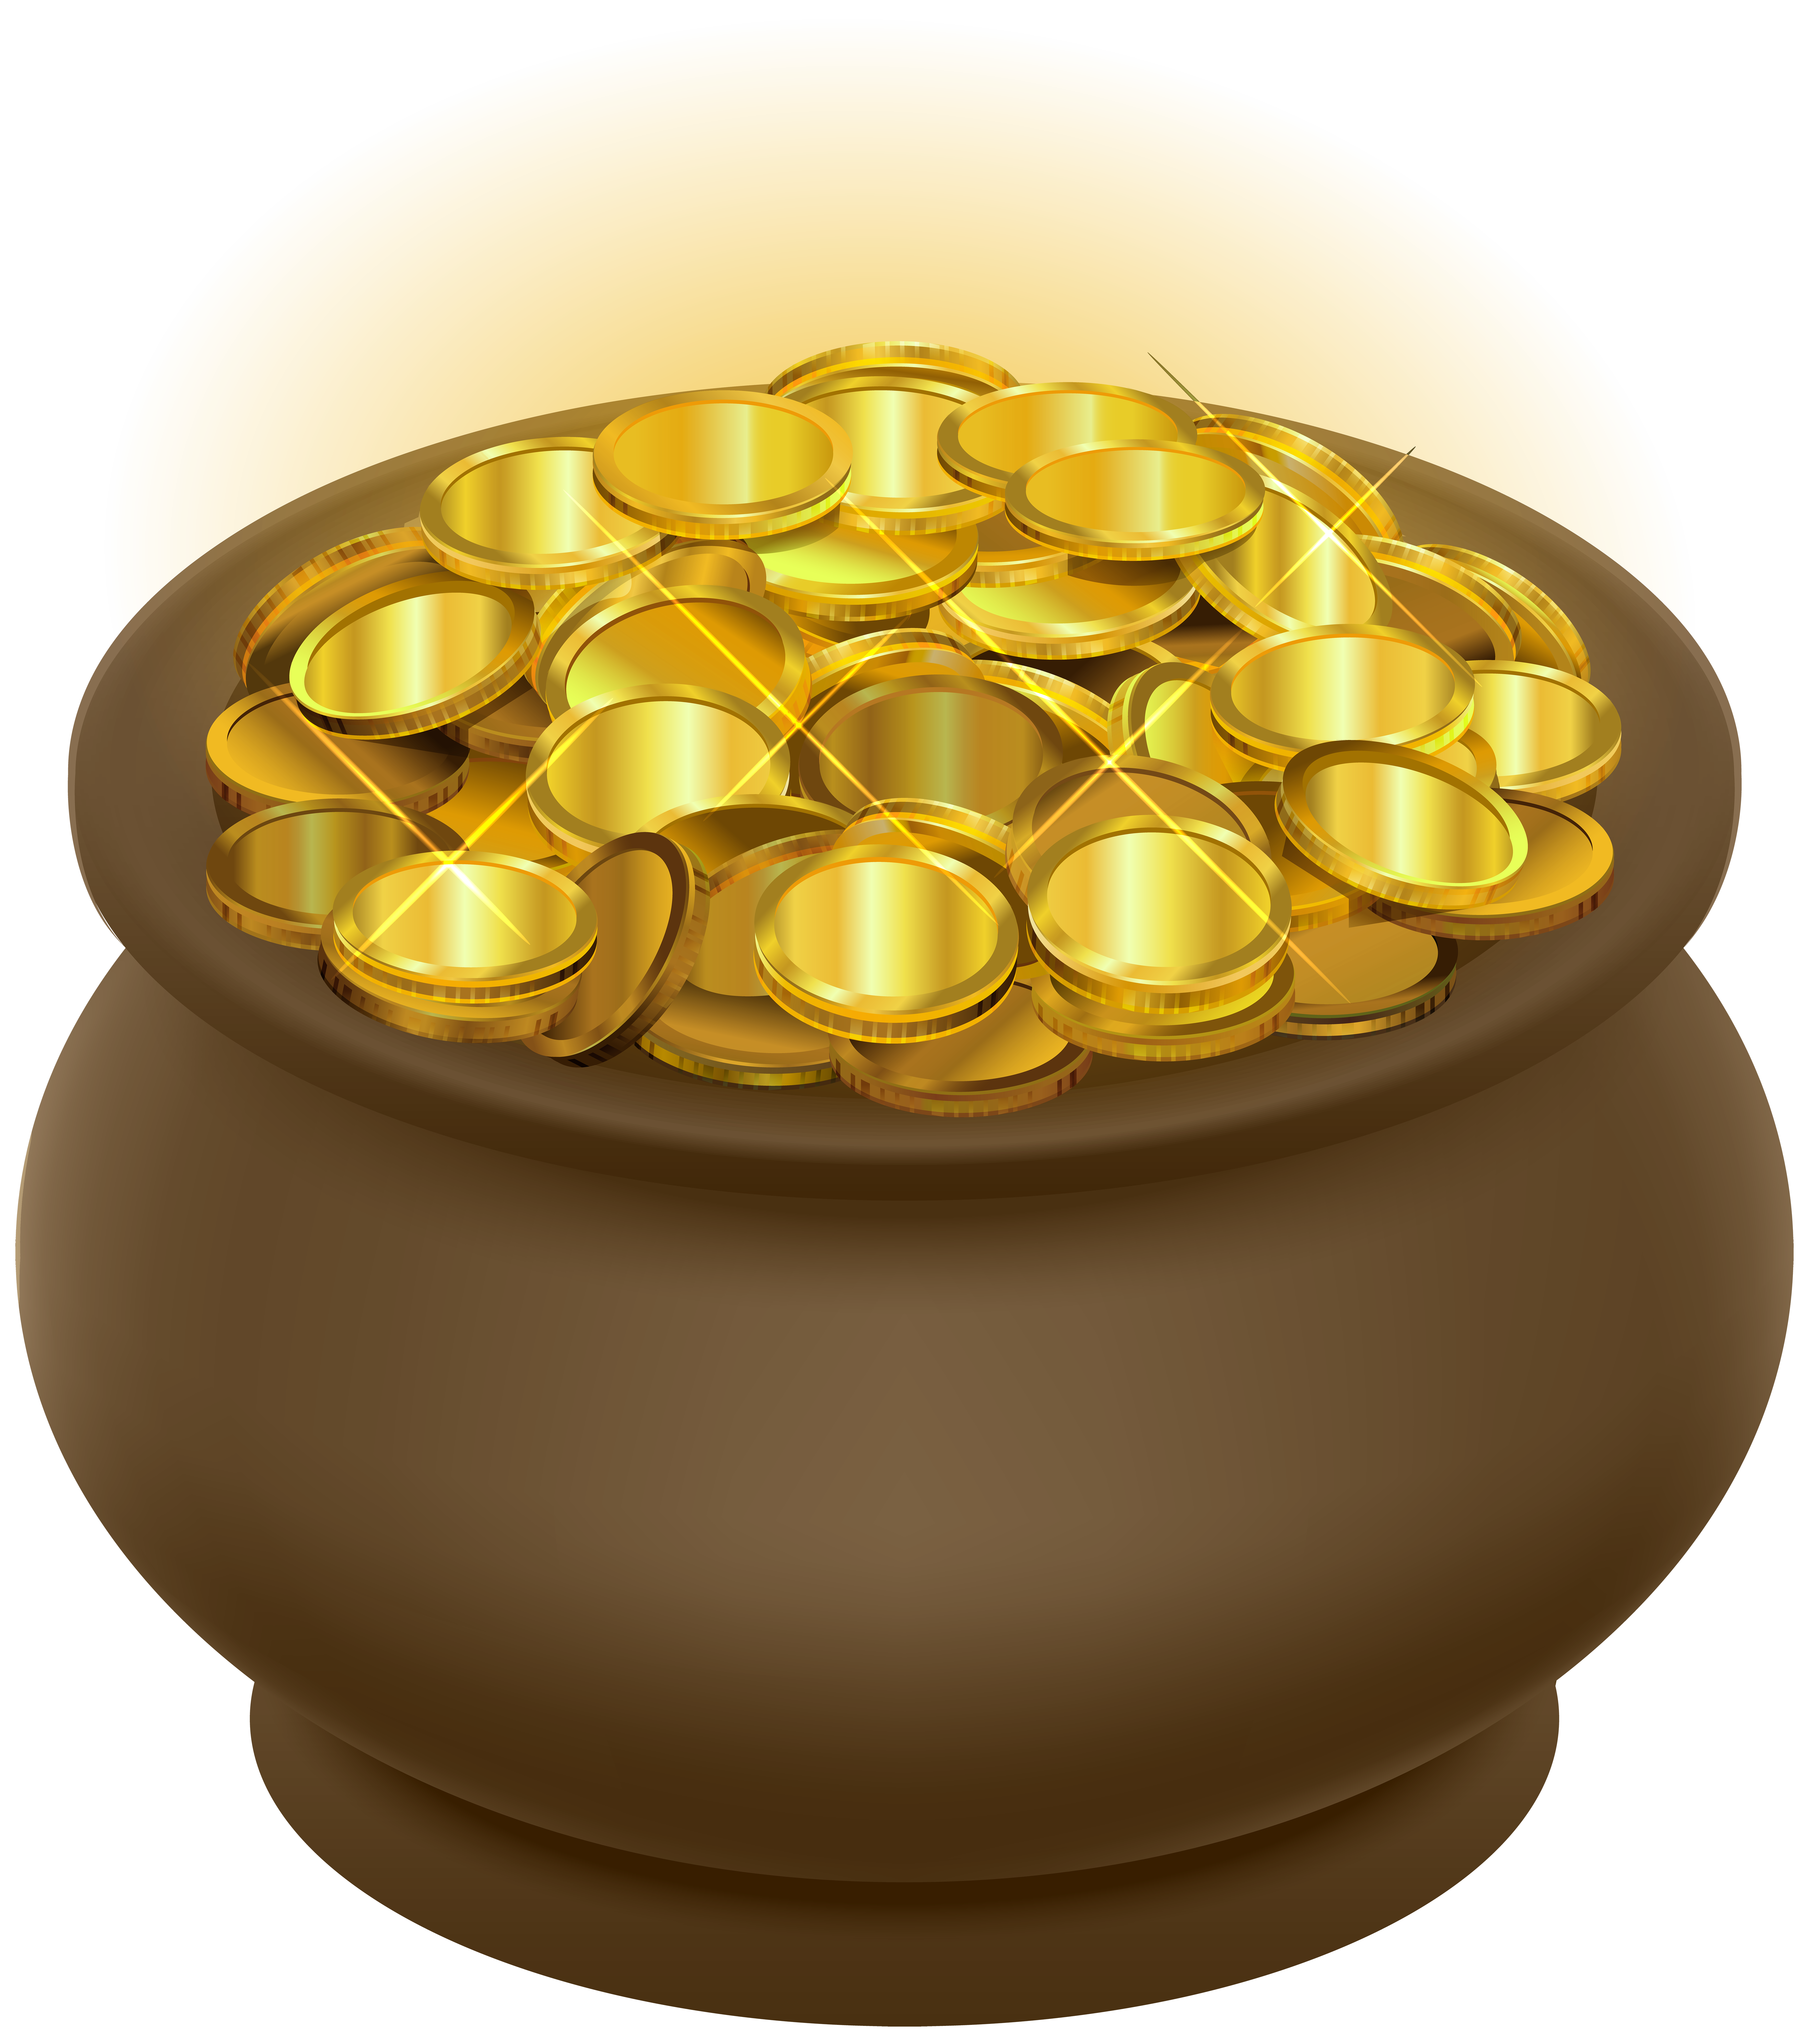 Money pot clipart png download Pot of Gold Transparent Clip Art Image | Gallery Yopriceville ... png download